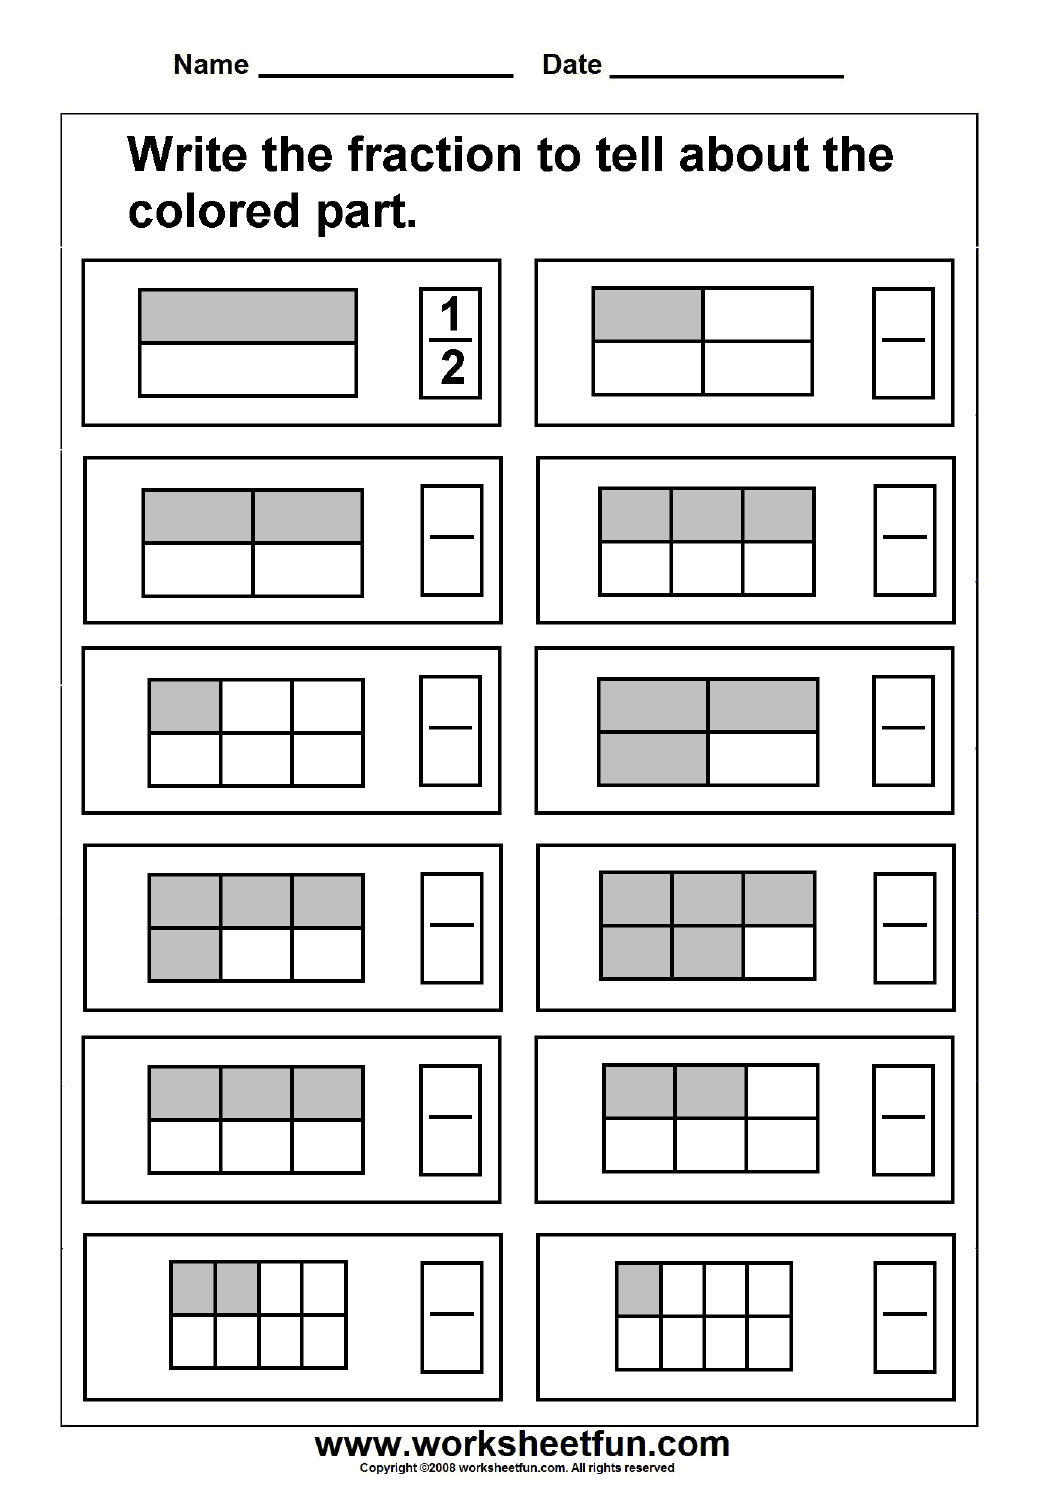 Fraction FREE Printable Worksheets Worksheetfun – Fraction Worksheet for Grade 1